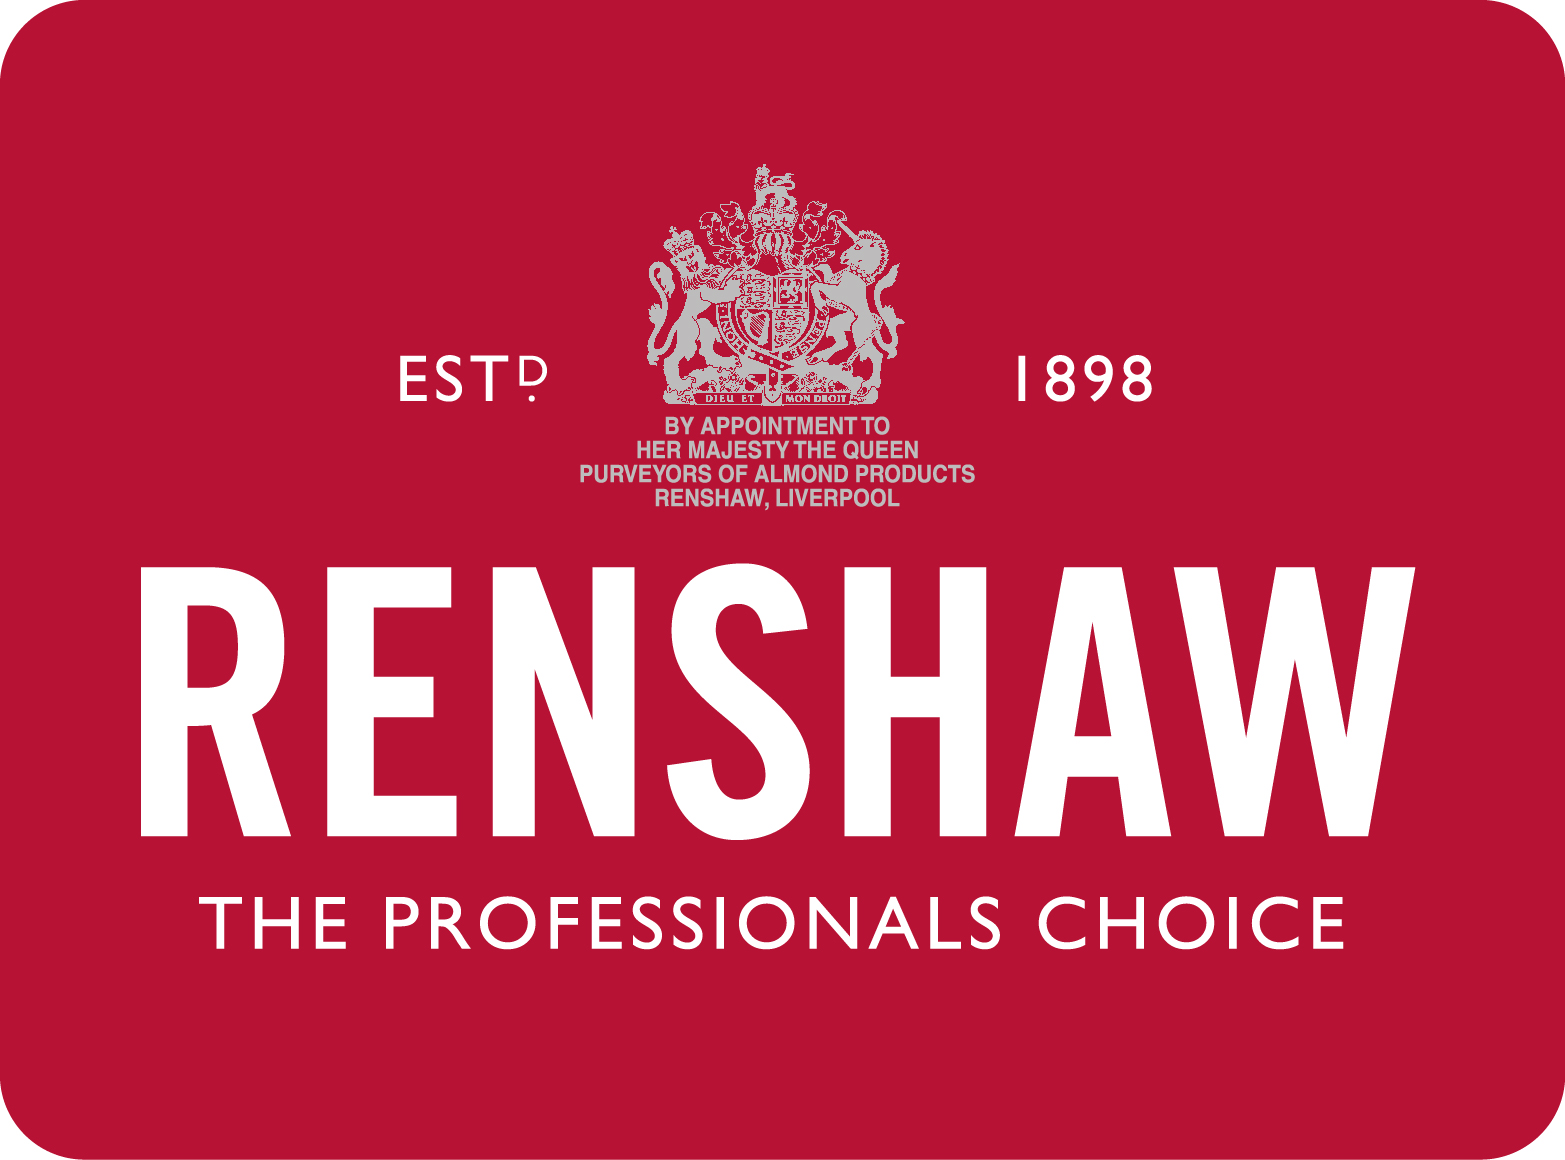 J F Renshaw Ltd